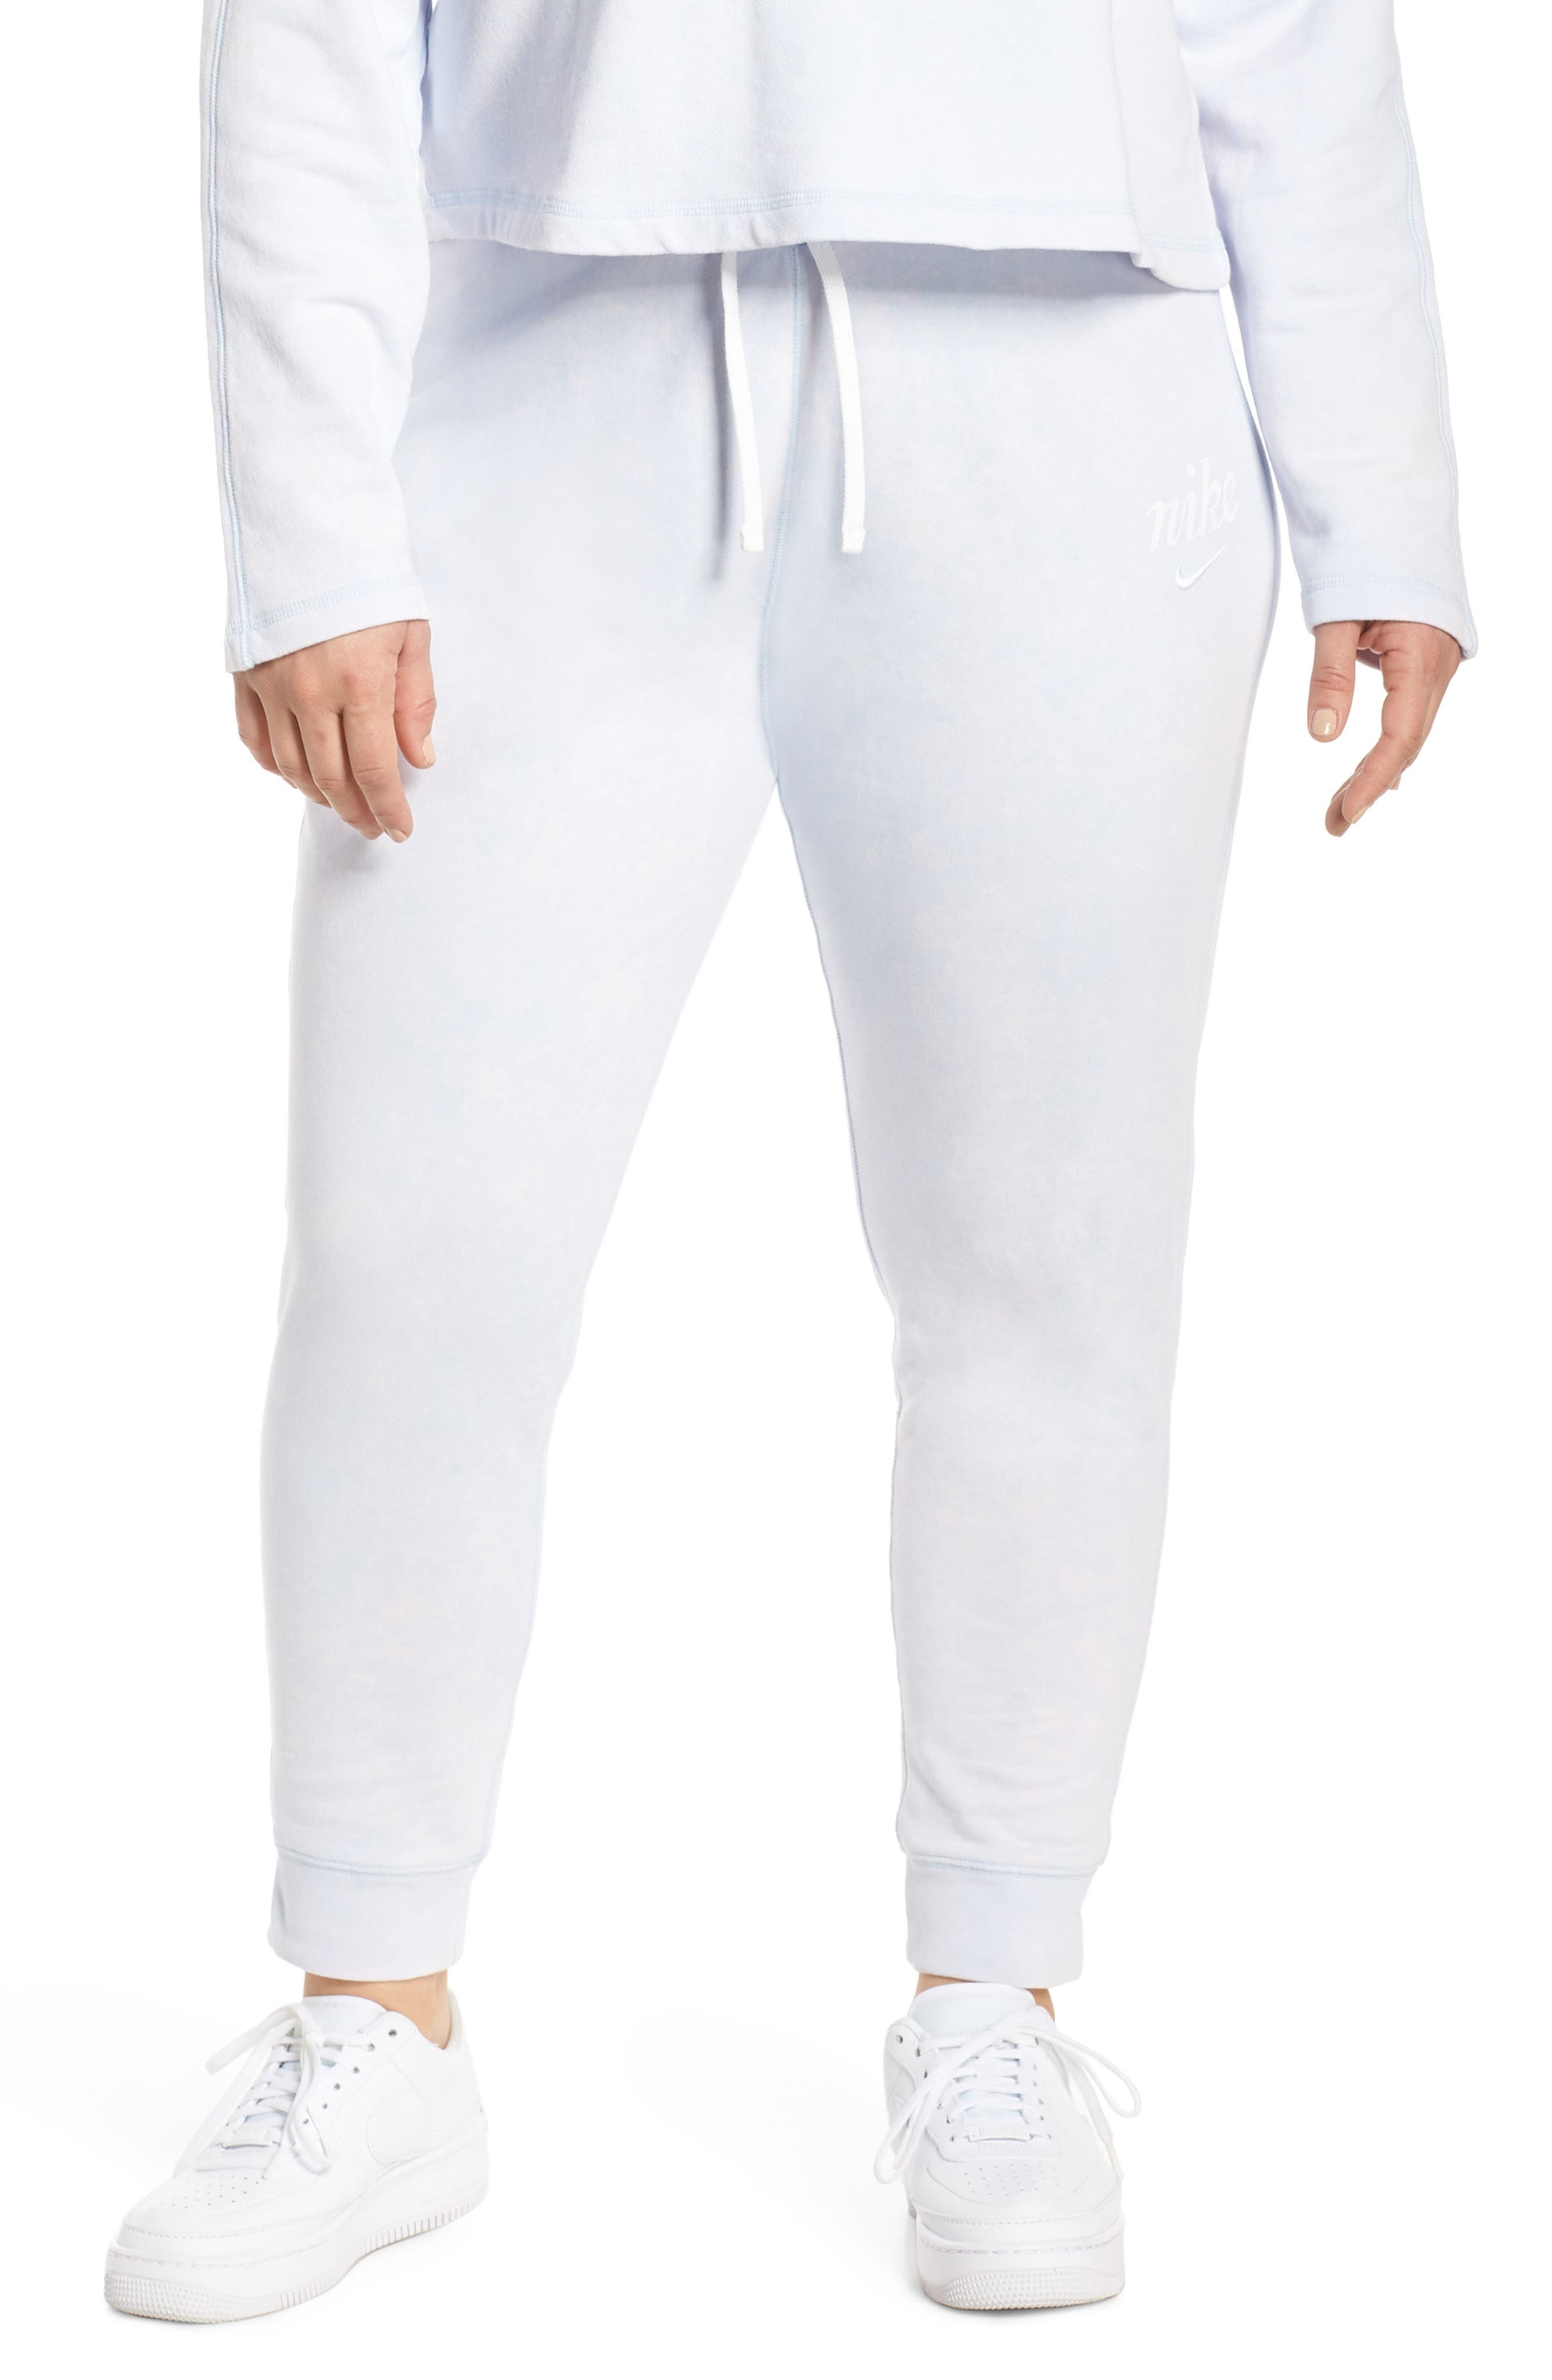 Plus Women's Nike Sweatpants